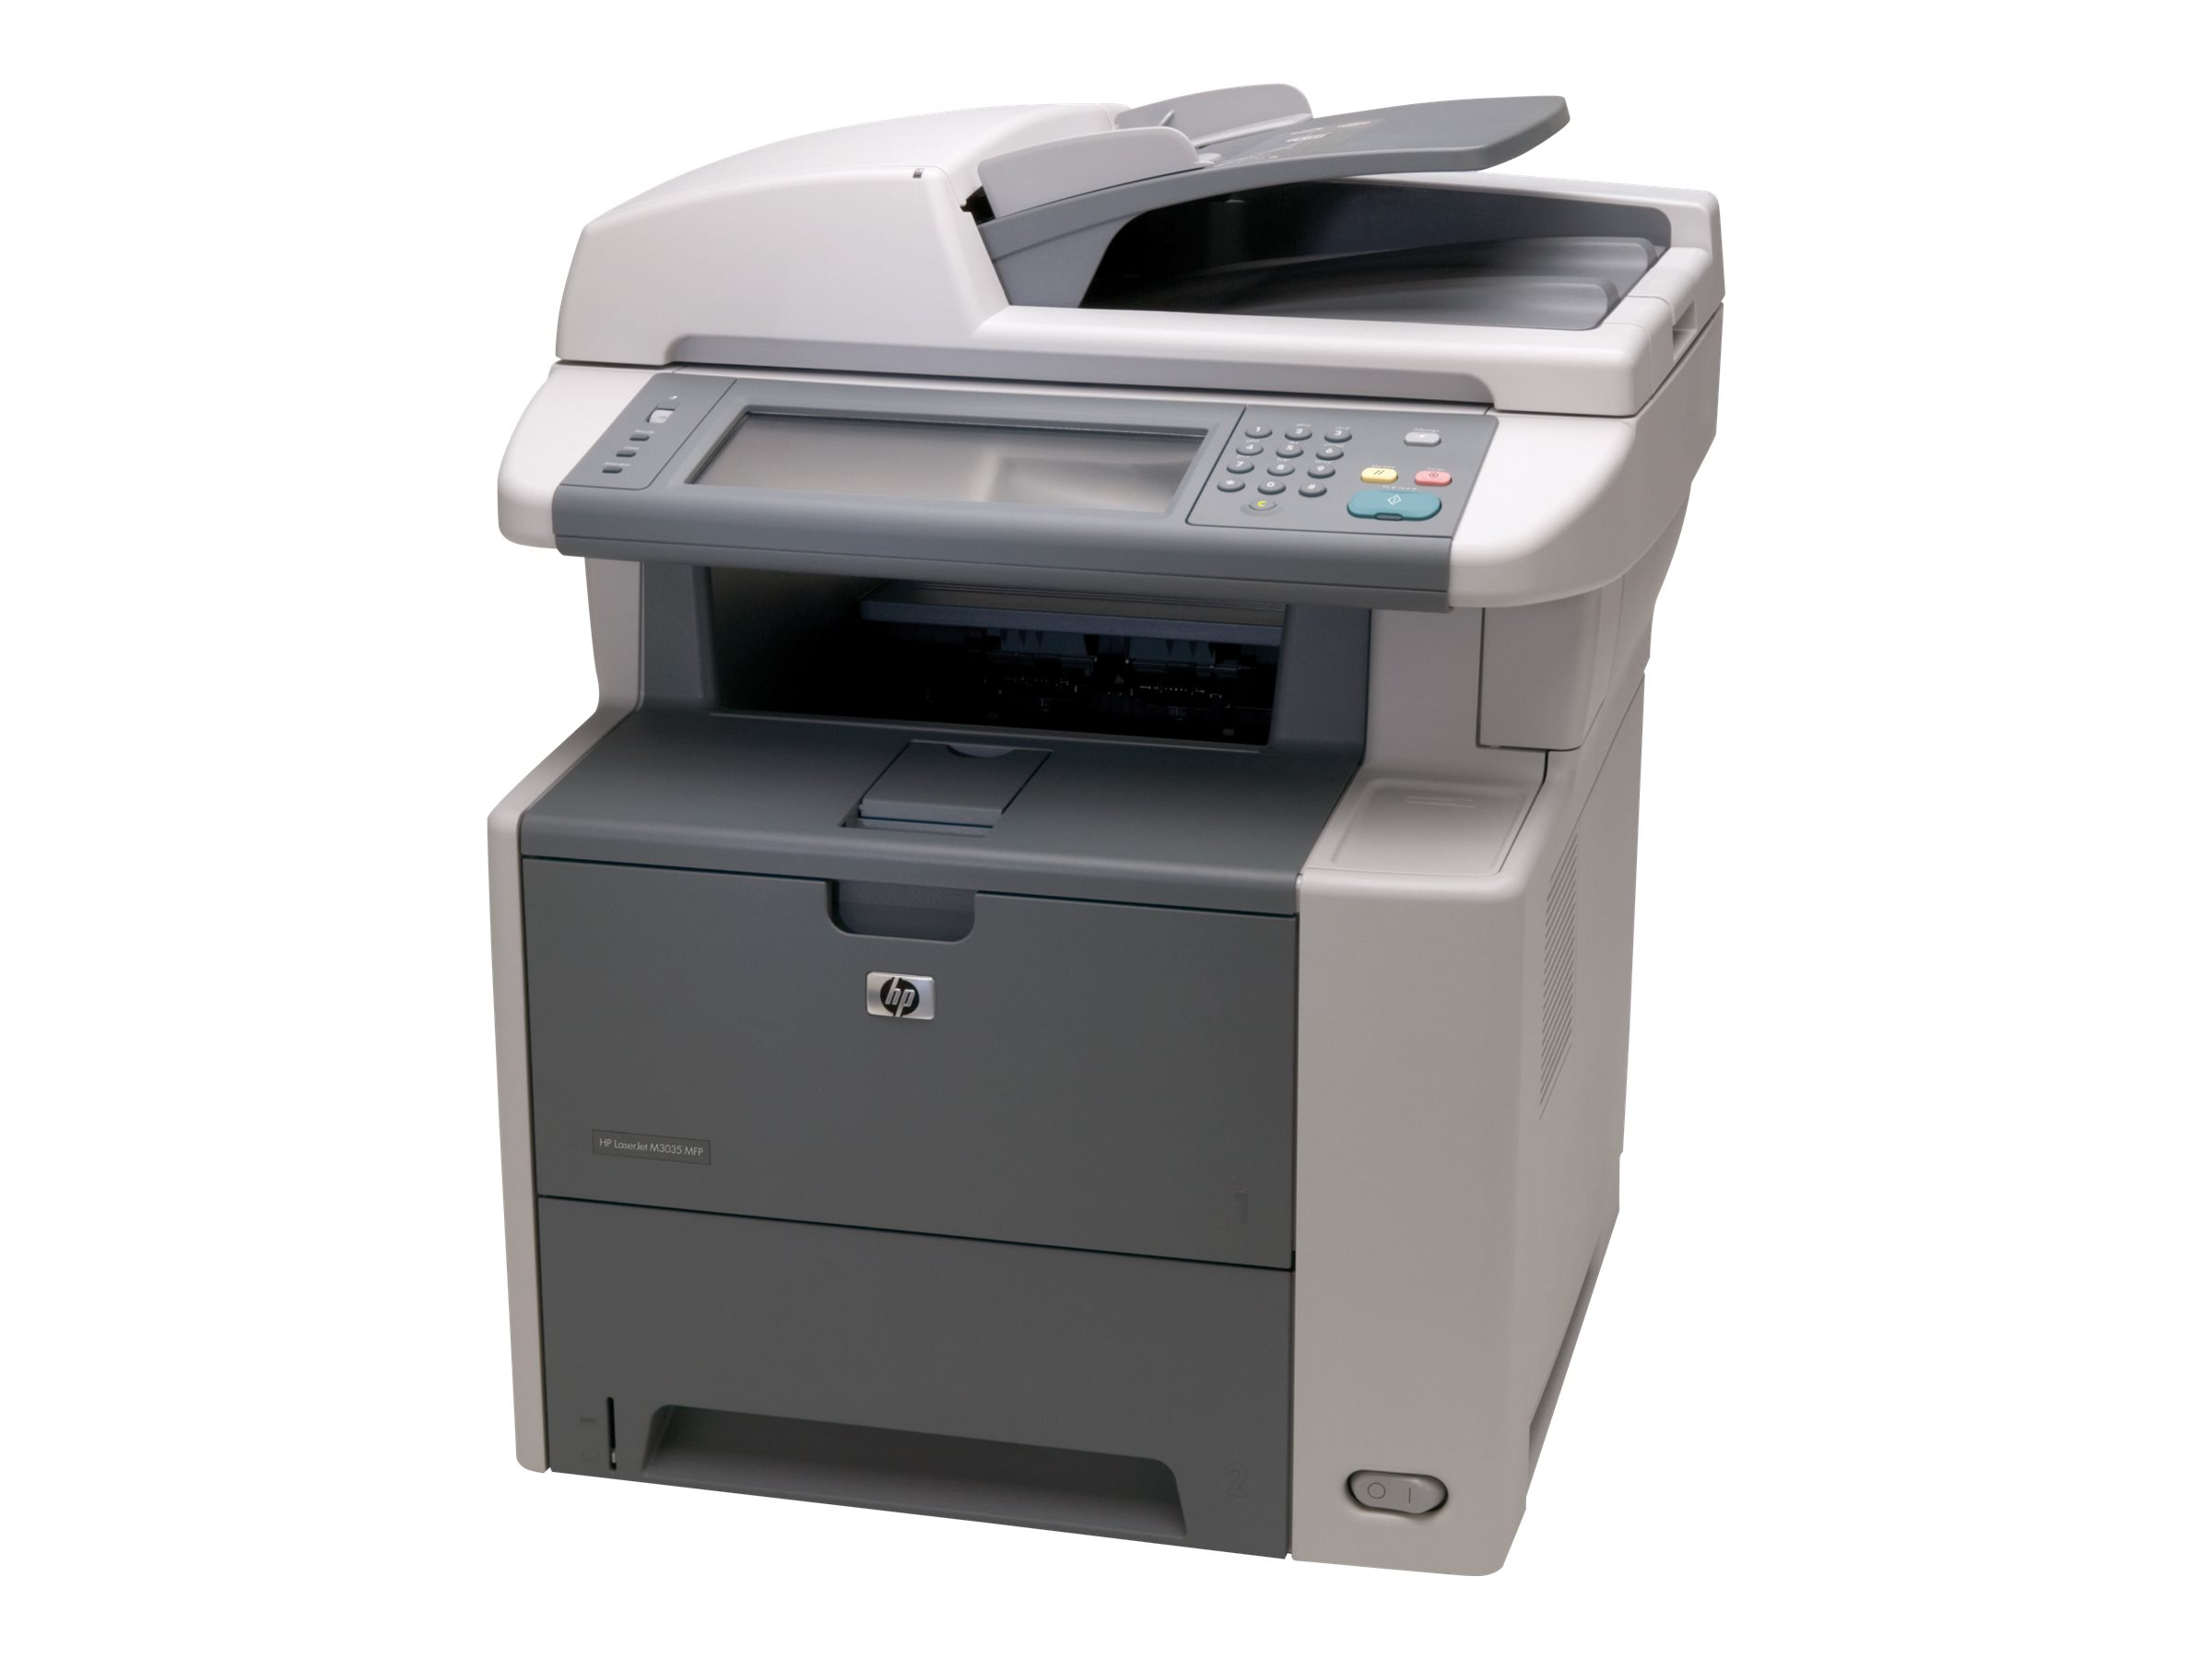 HP LaserJet M3035 MFP - Multifunktionsdrucker - s/w - Laser - 216 x 297 mm (Original) - A4/Legal (Medien)